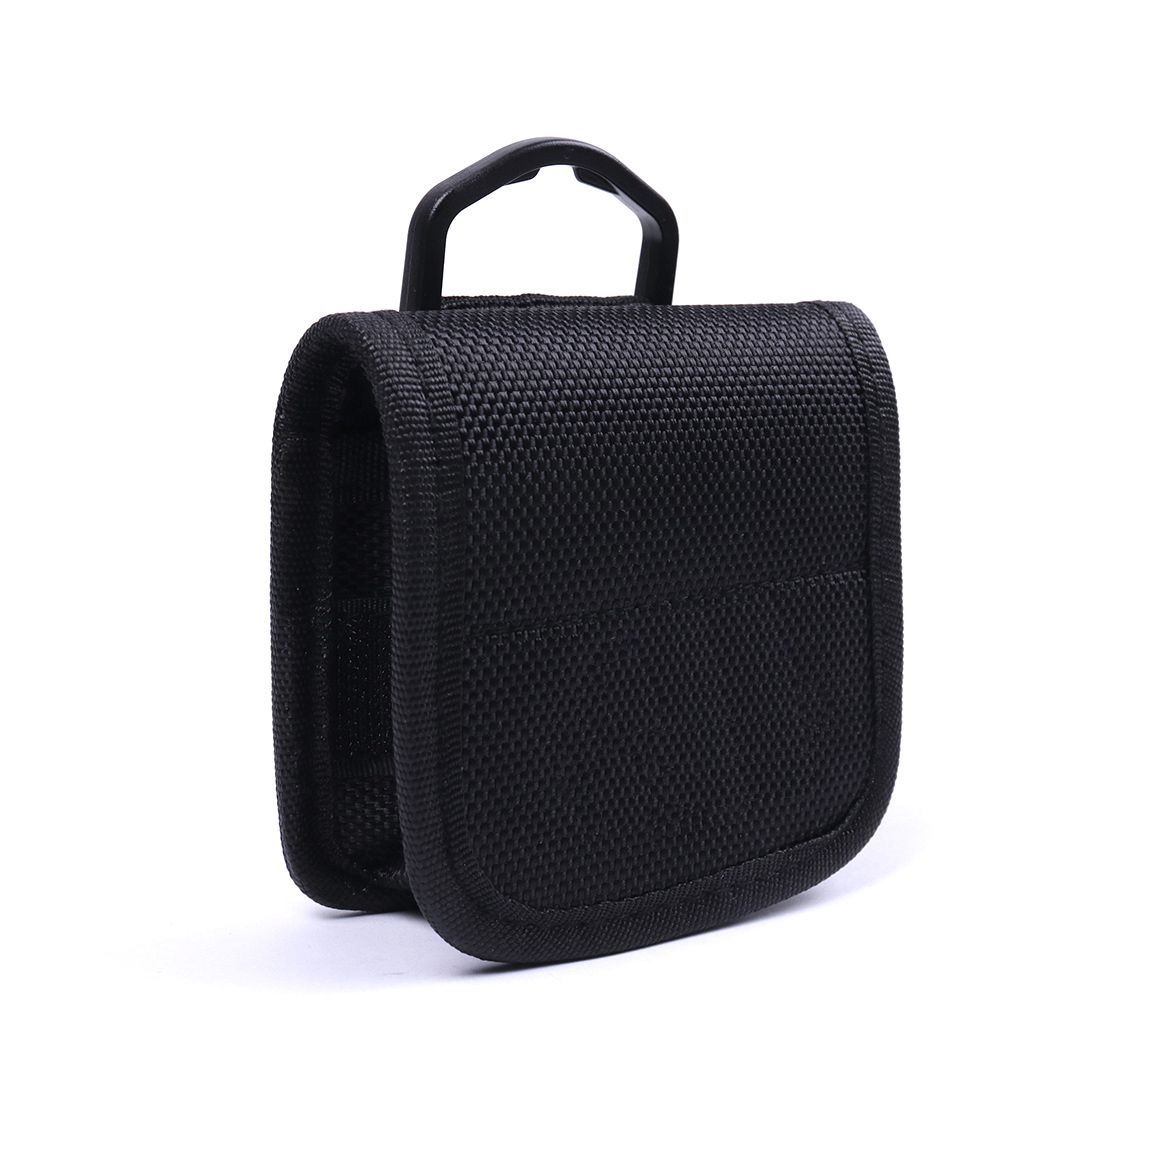 1pcs 8.8x8.5x3cm Black Nylon and fabric Battery Case Holder Can Accommodate Either 4pcs 18650 Batteries Battery Carrying Bag